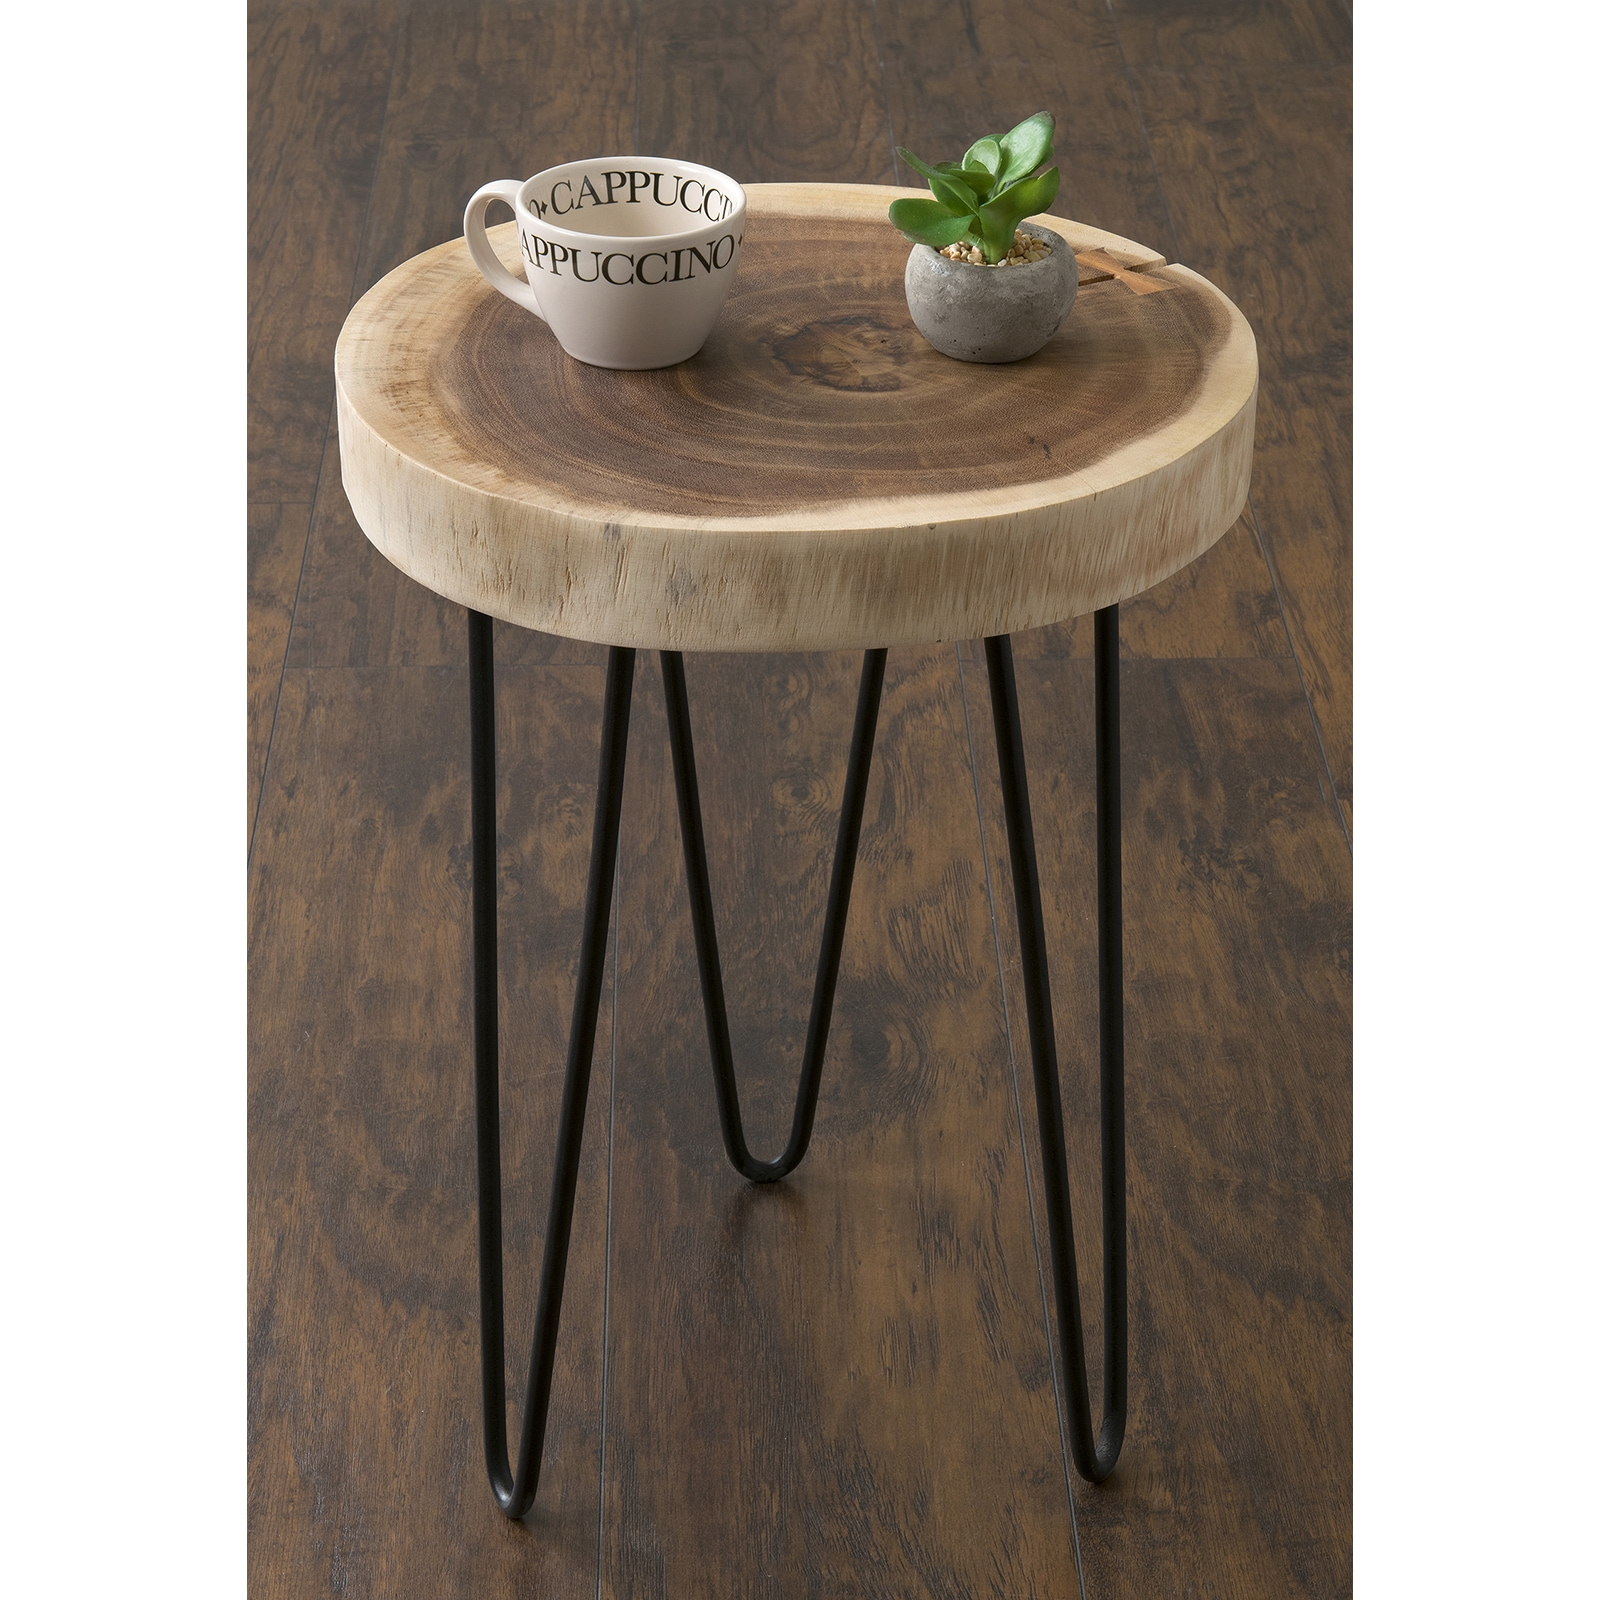 Pine Canopy Nantahala Brown Teakwood Round Accent Table   Free Shipping  Today   Overstock   19966268